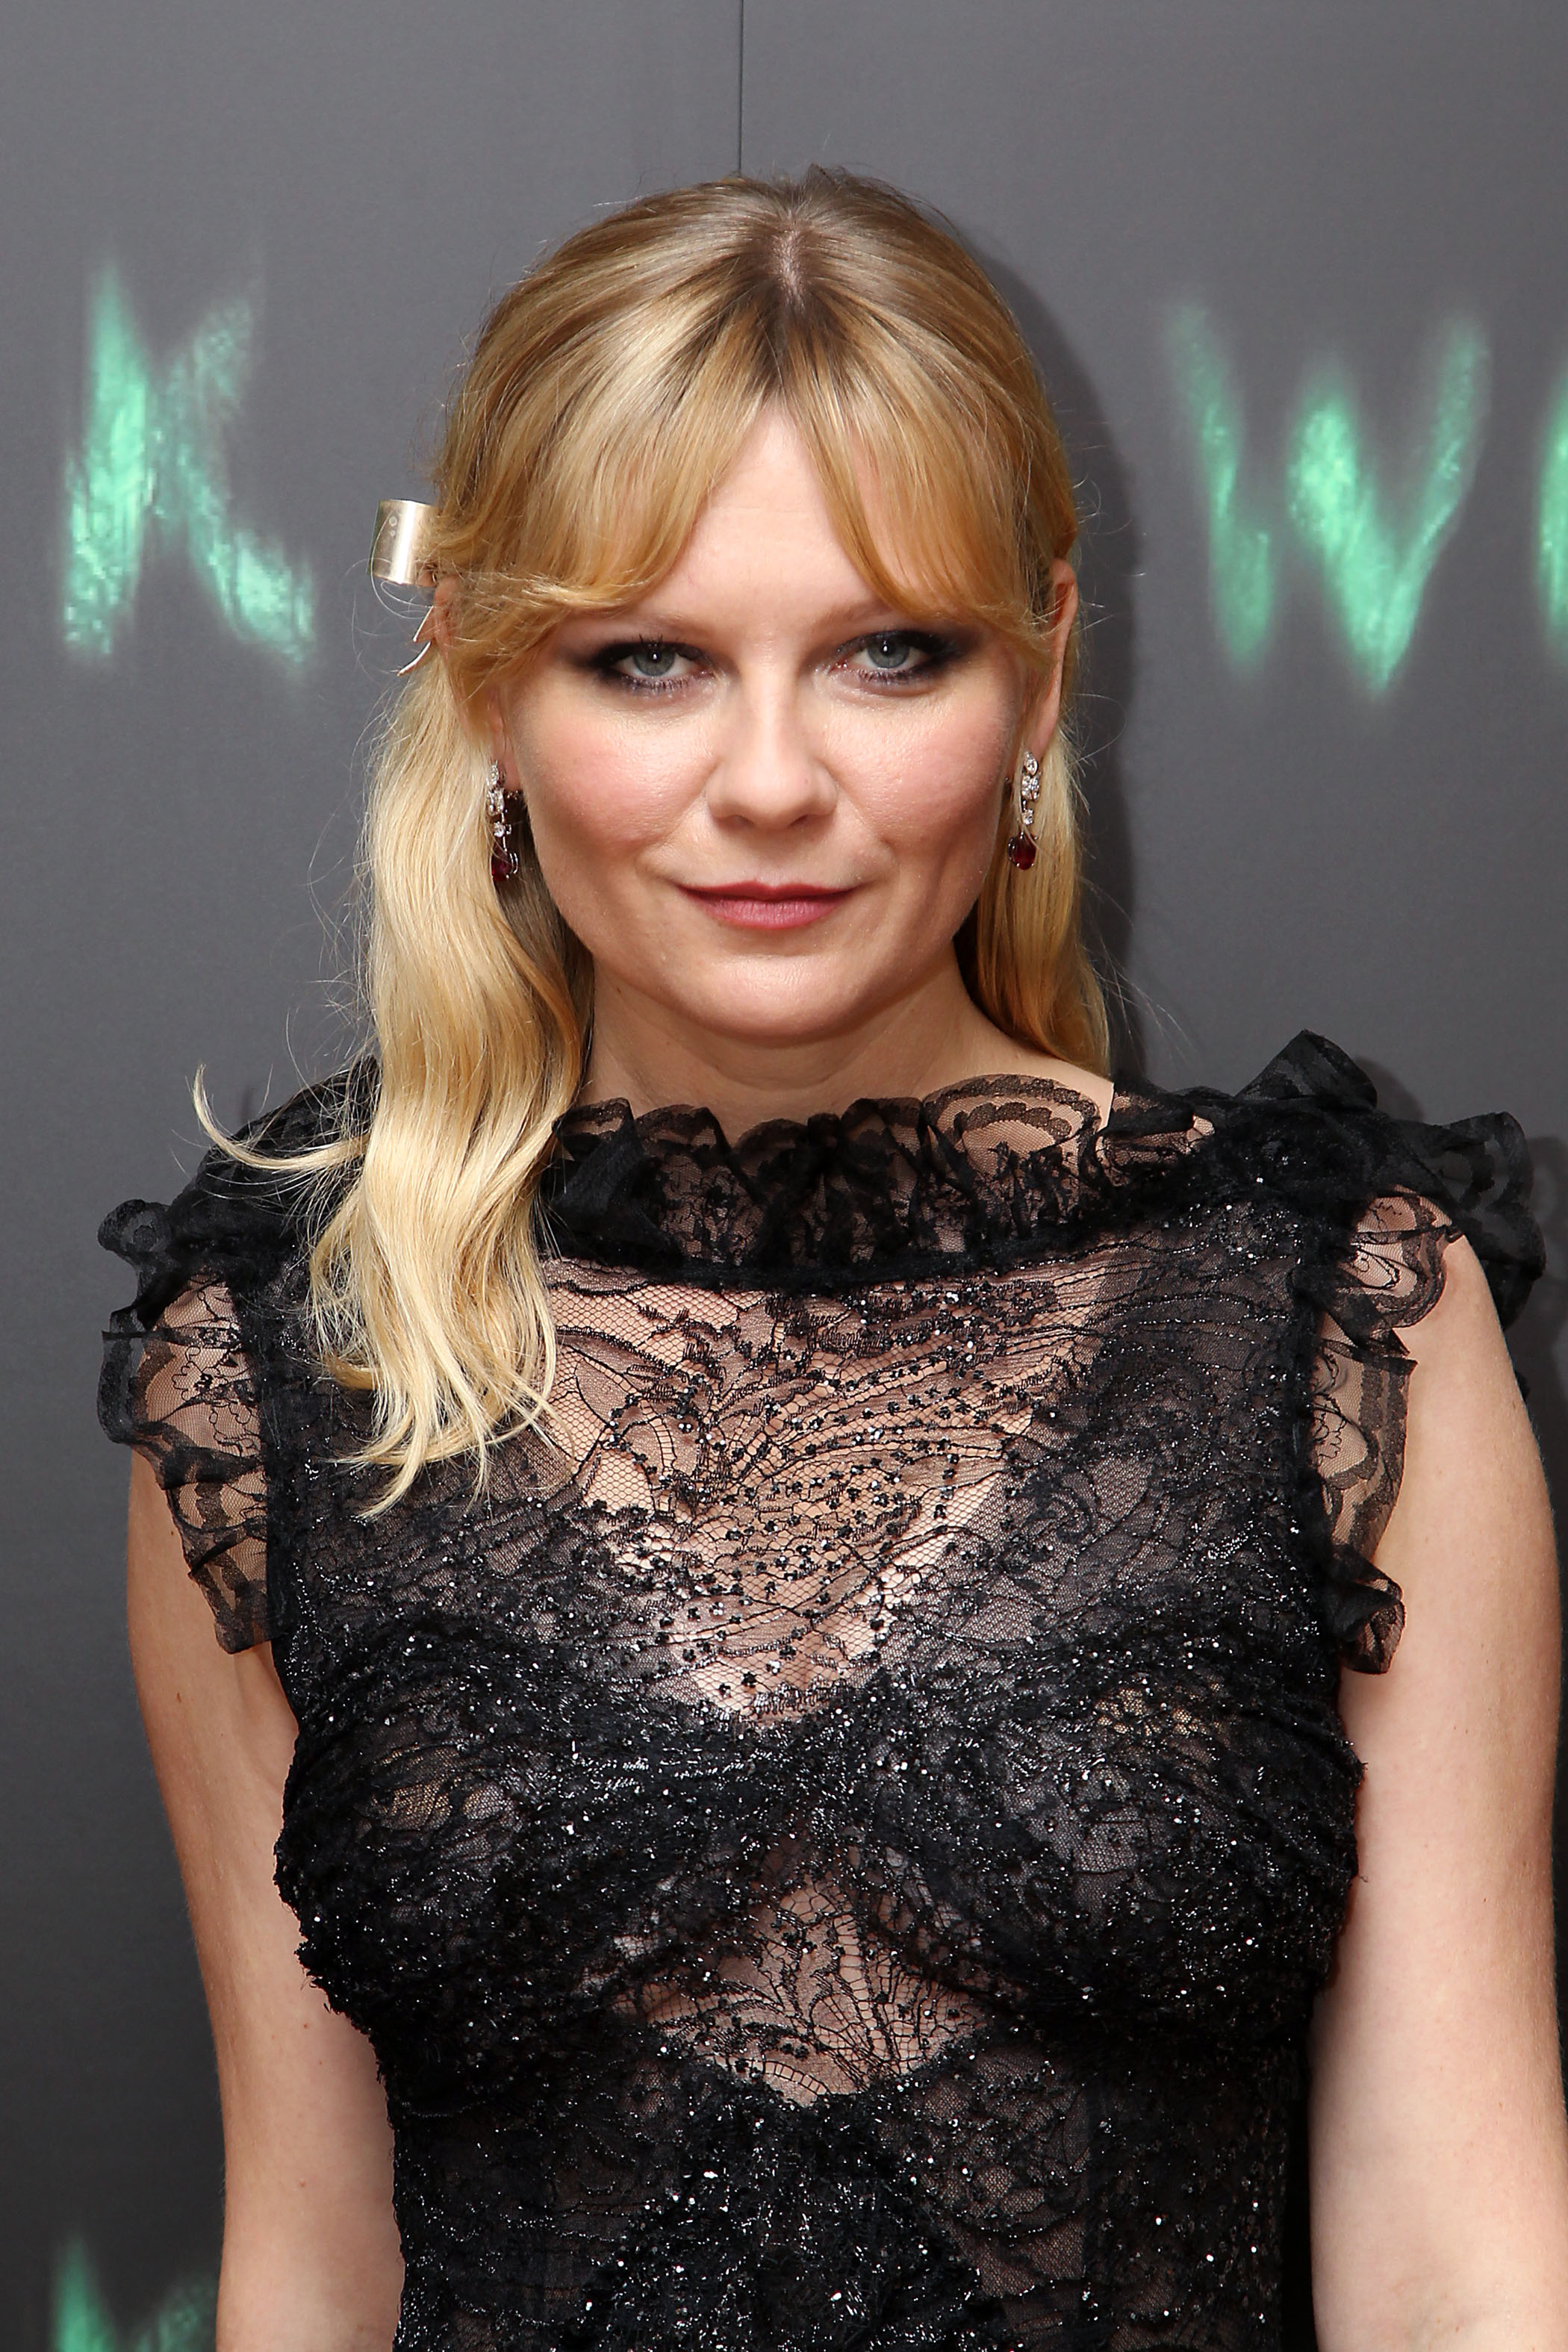 kirsten dunst medium length blonde hair with bardot bangs